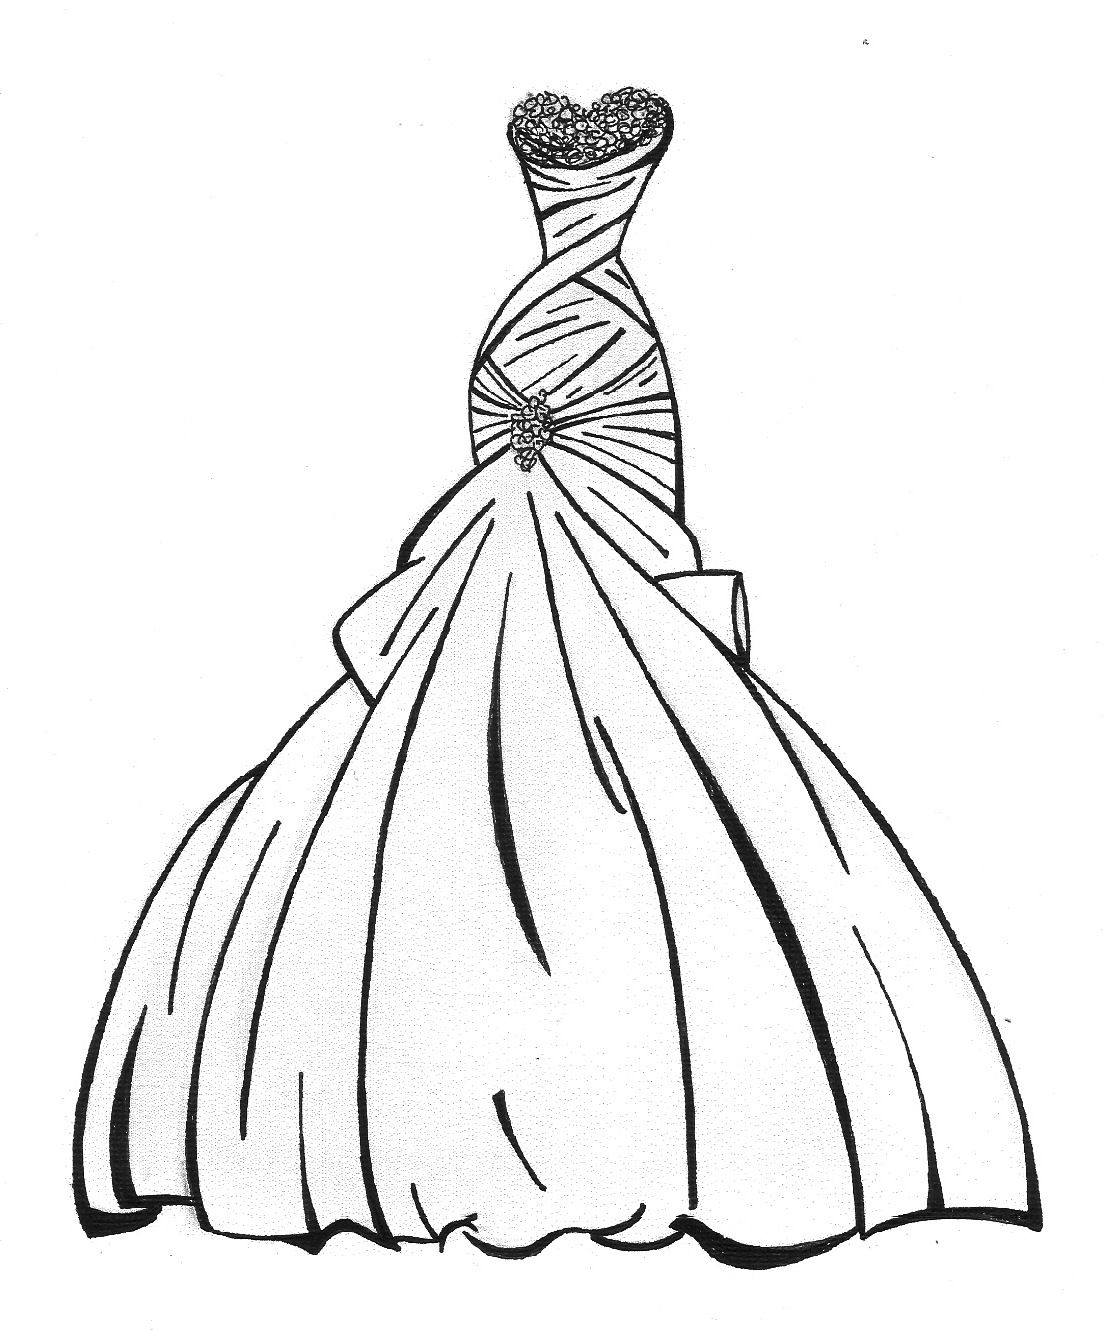 wedding dress coloring pages Dress Coloring Pages | Wedding dress coloring pages | color  wedding dress coloring pages